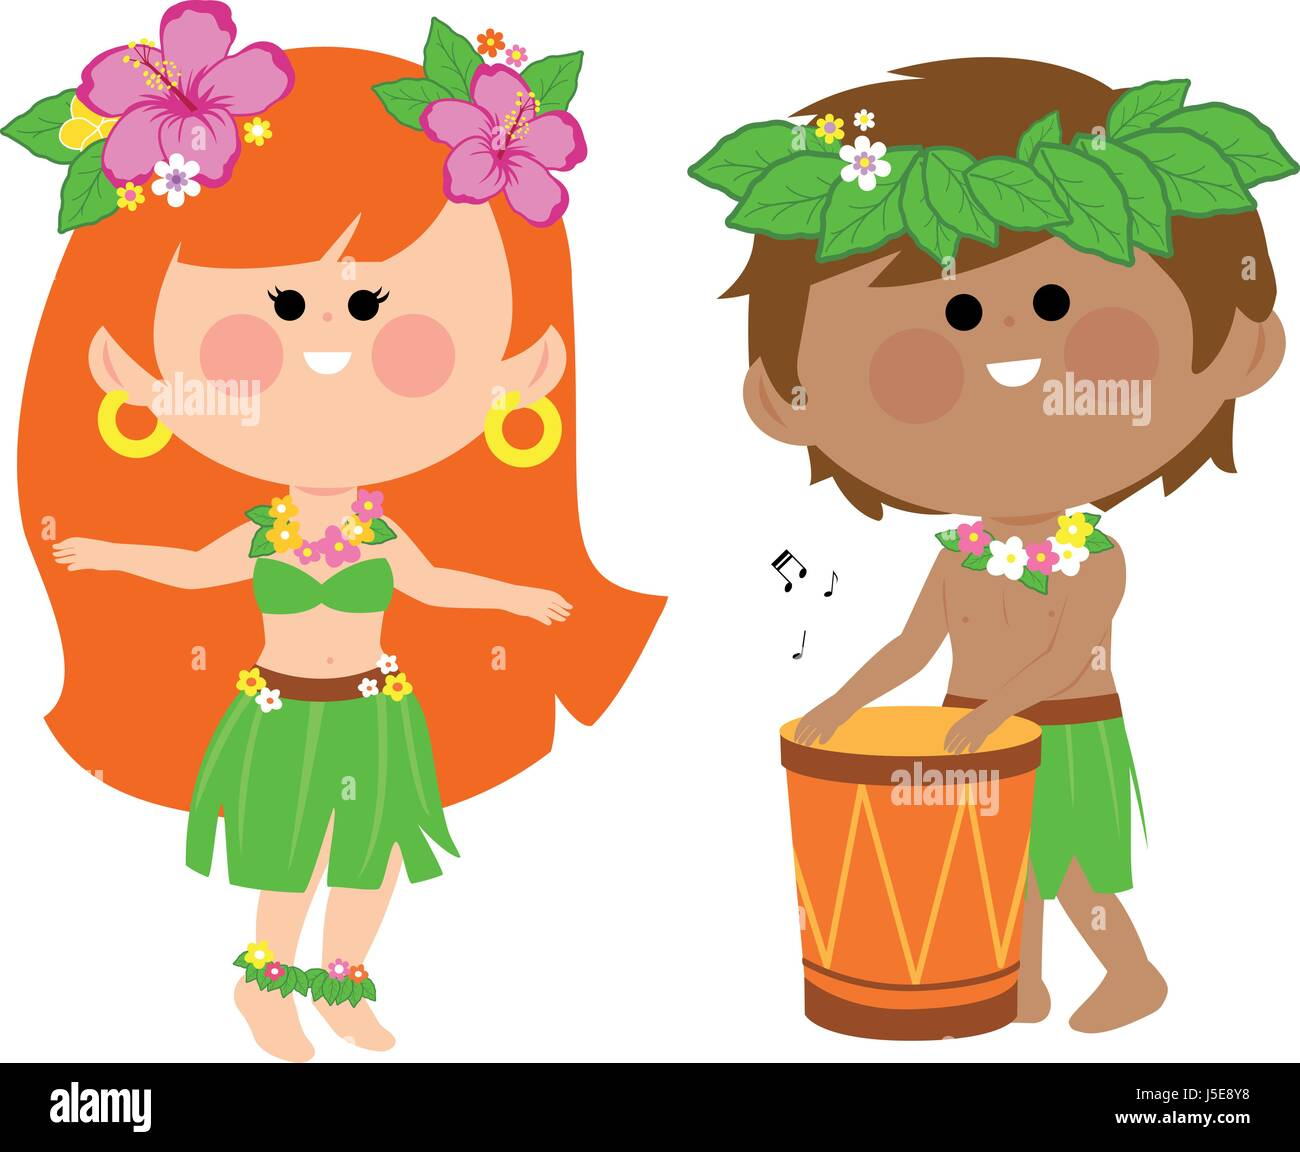 Hawaiian children playing music with a drum and hula dancing - Stock Vector